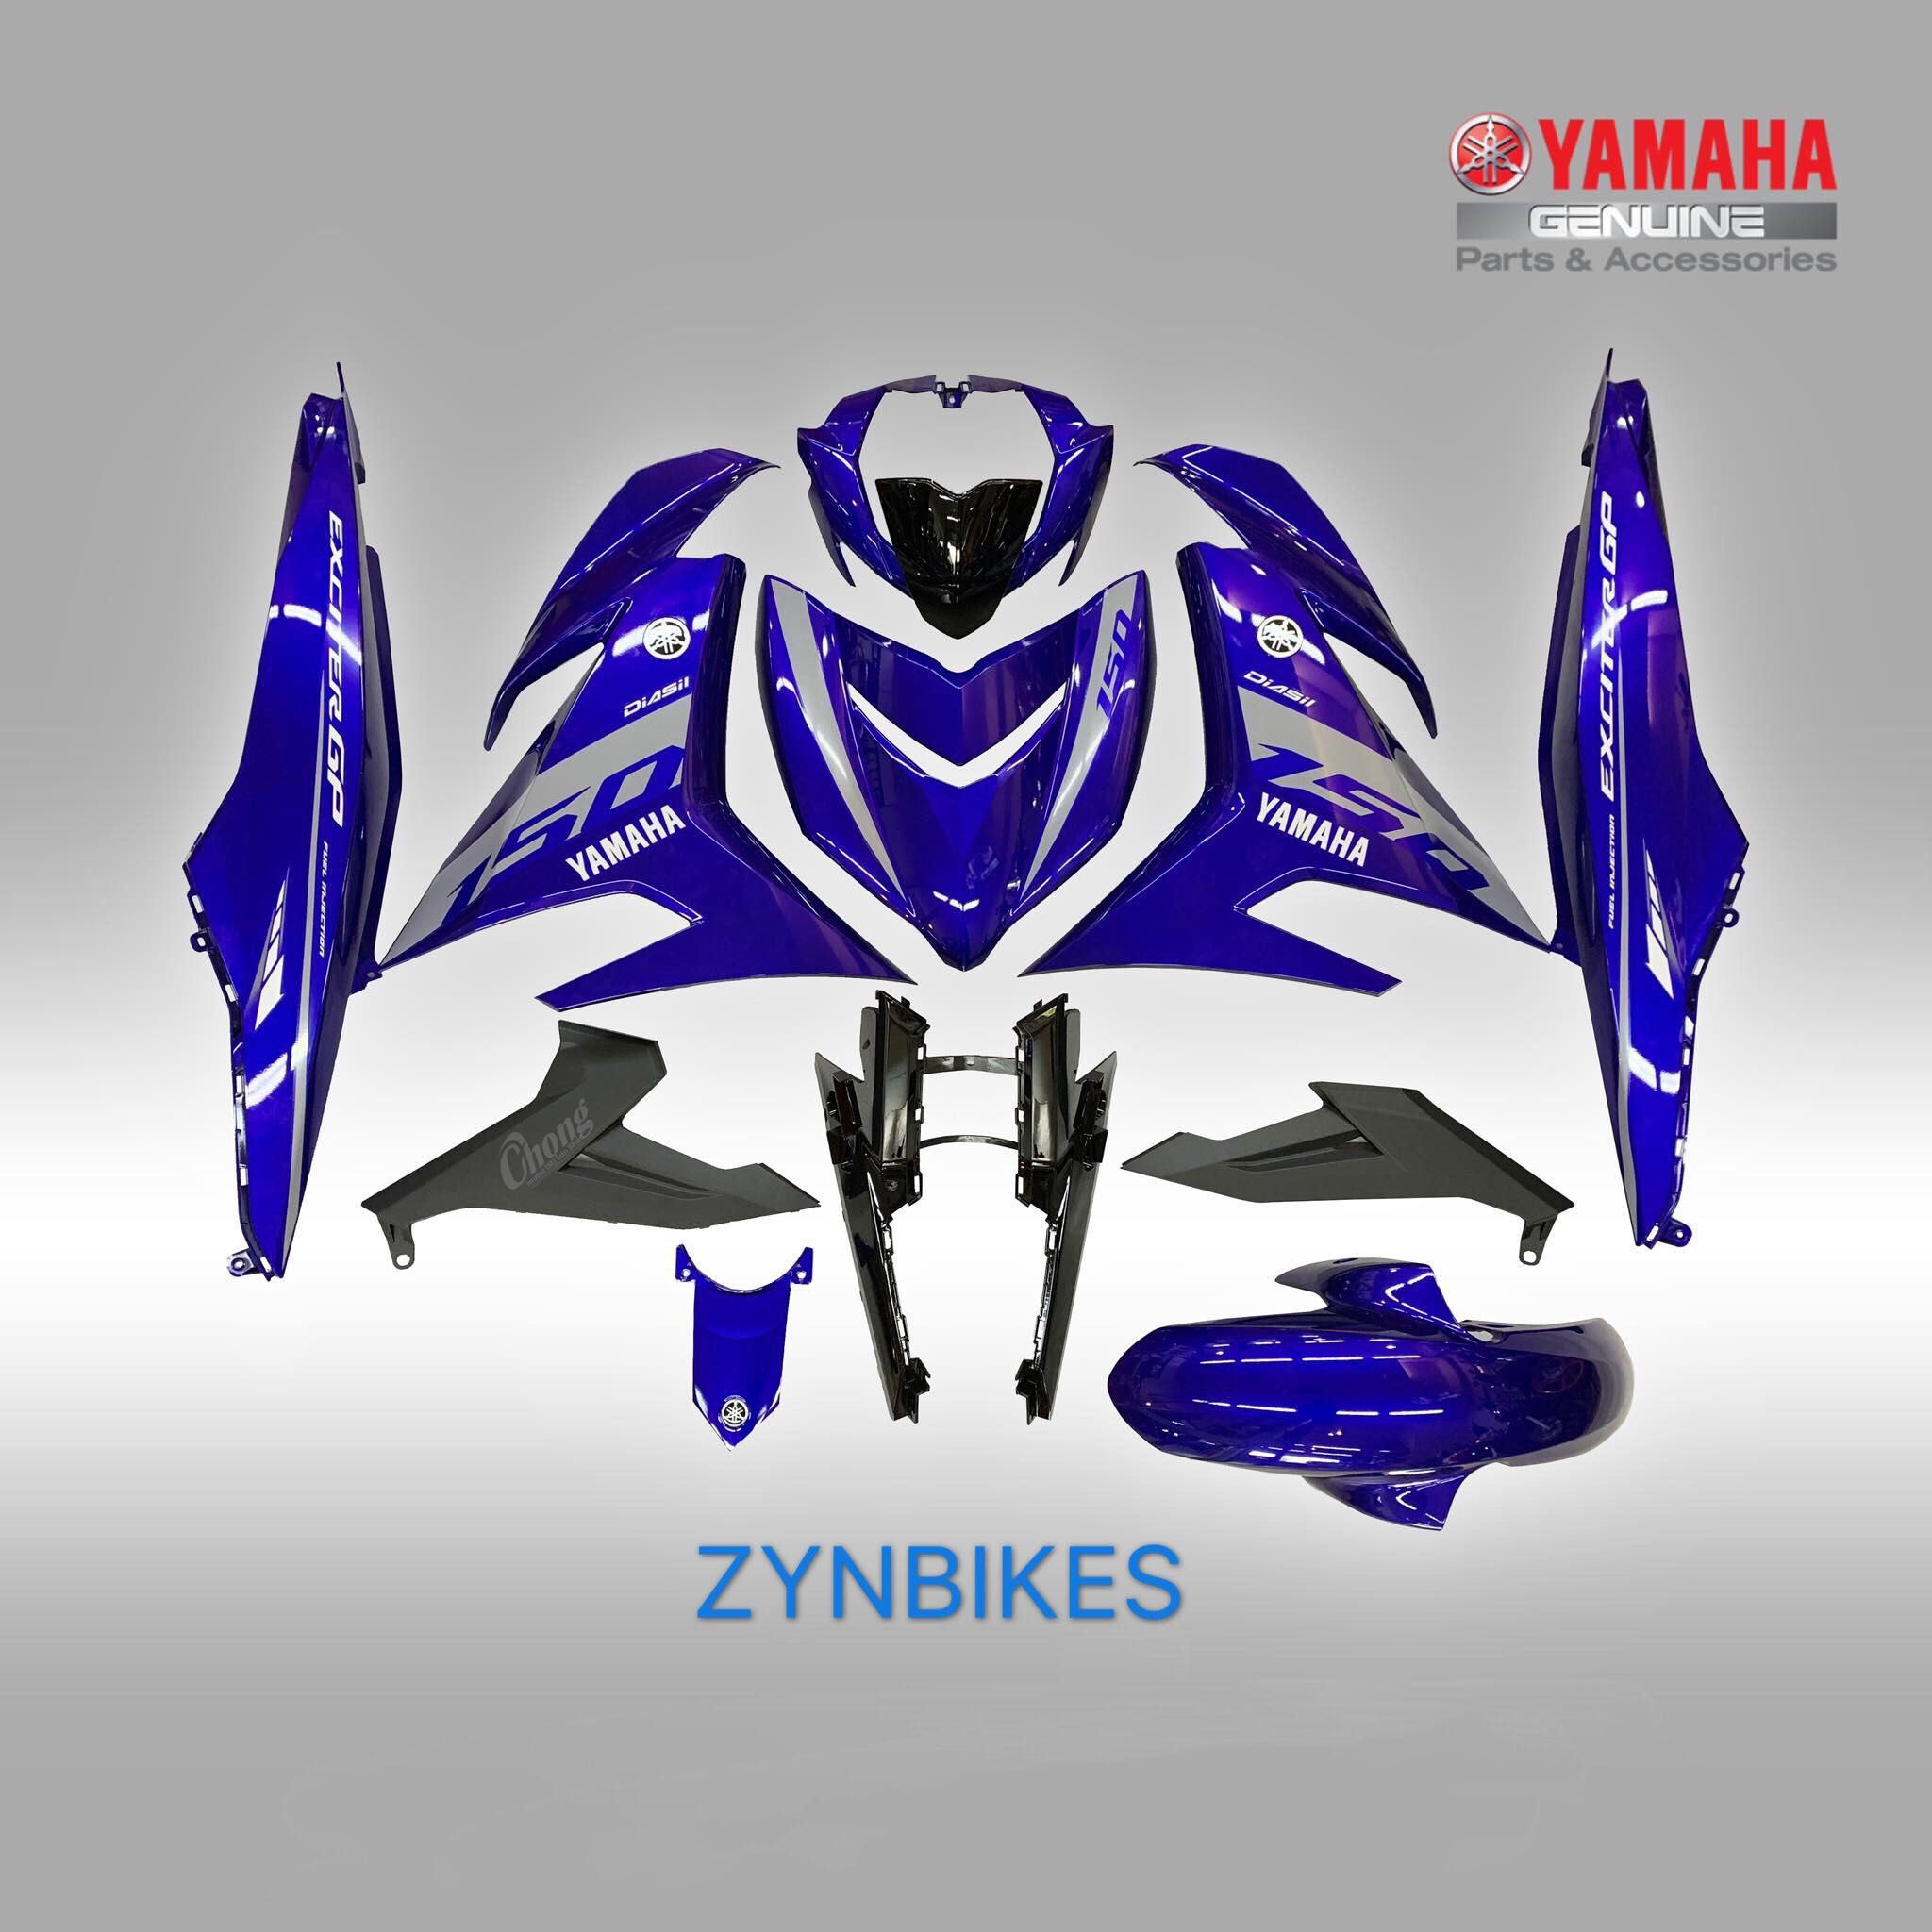 MXKING BODY COVER SET, Motorbikes, Motorbike Accessories